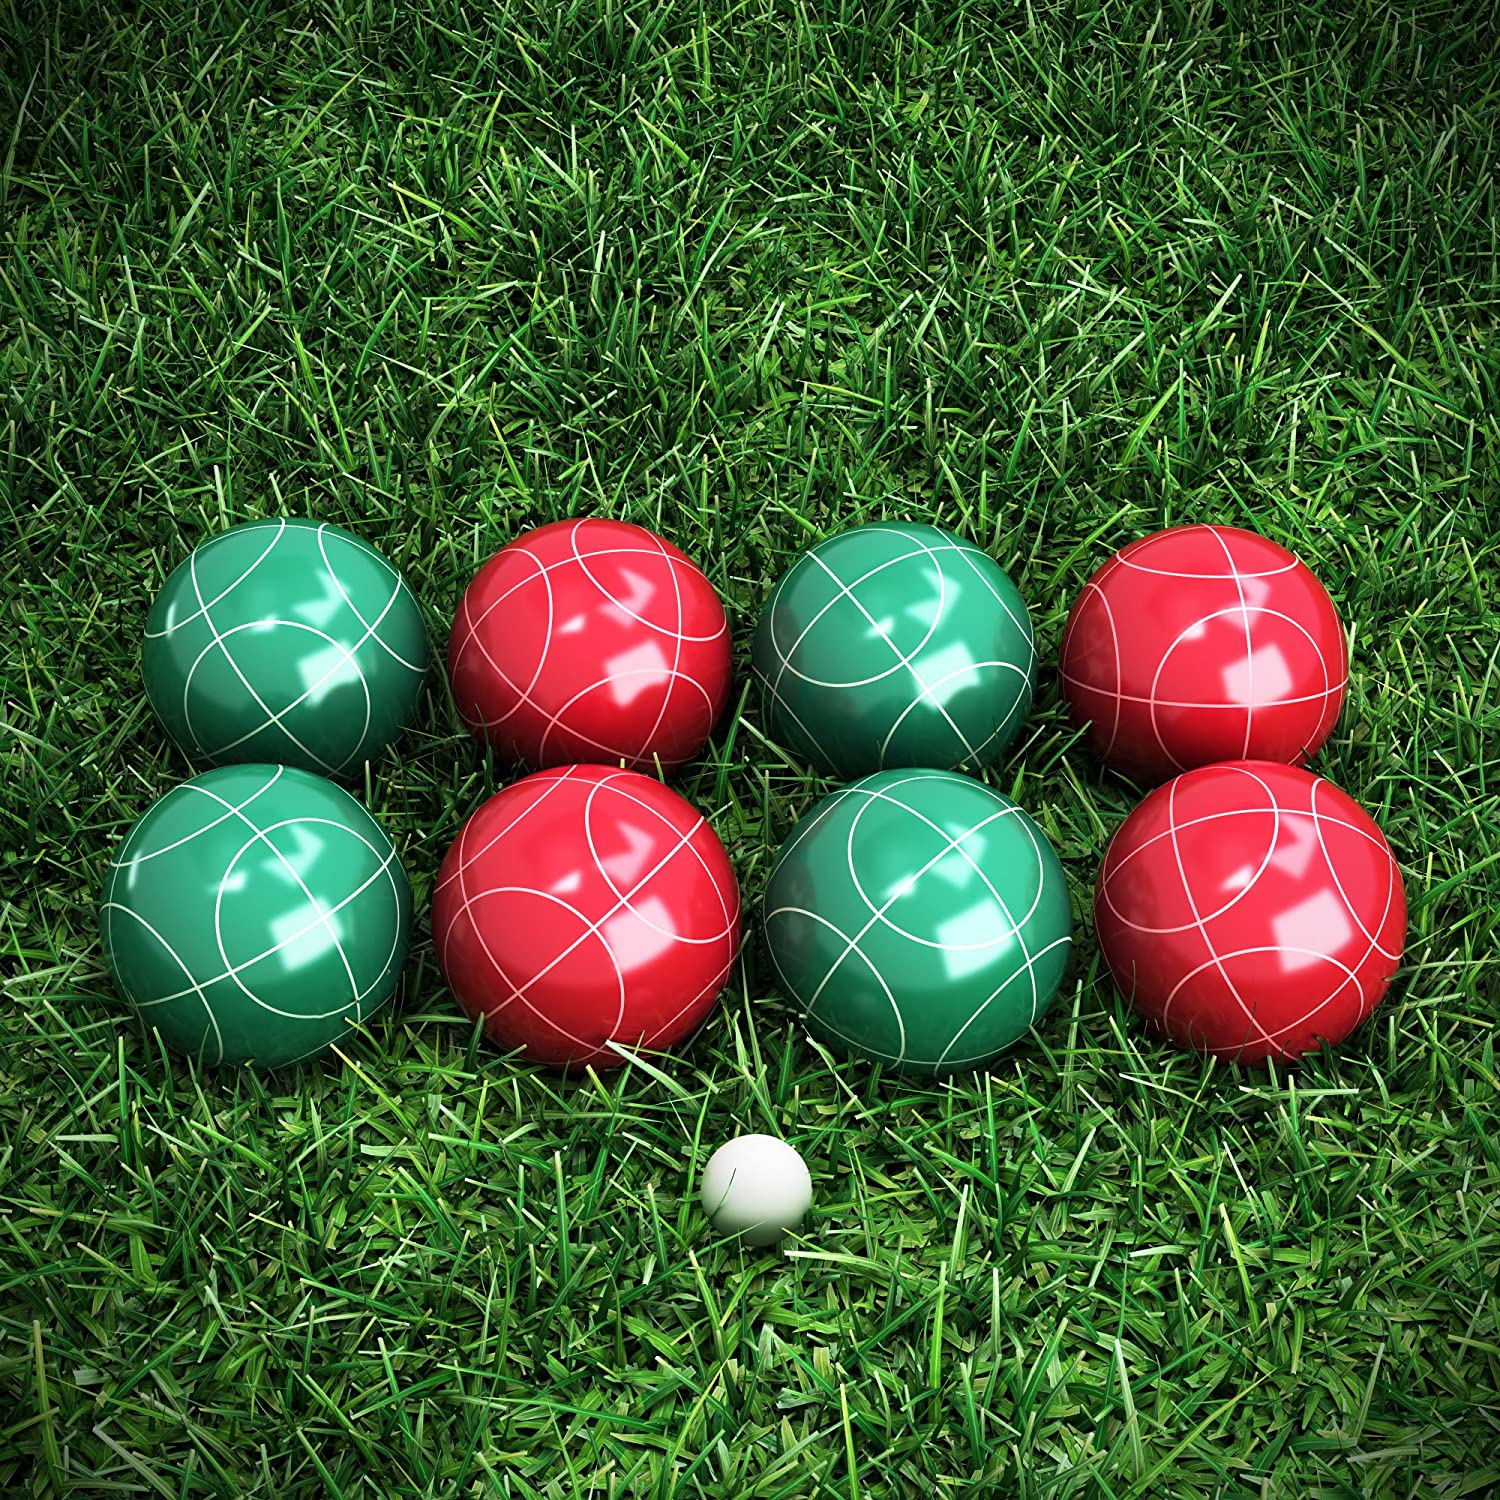 amazon com bocce ball set outdoor family bocce game for